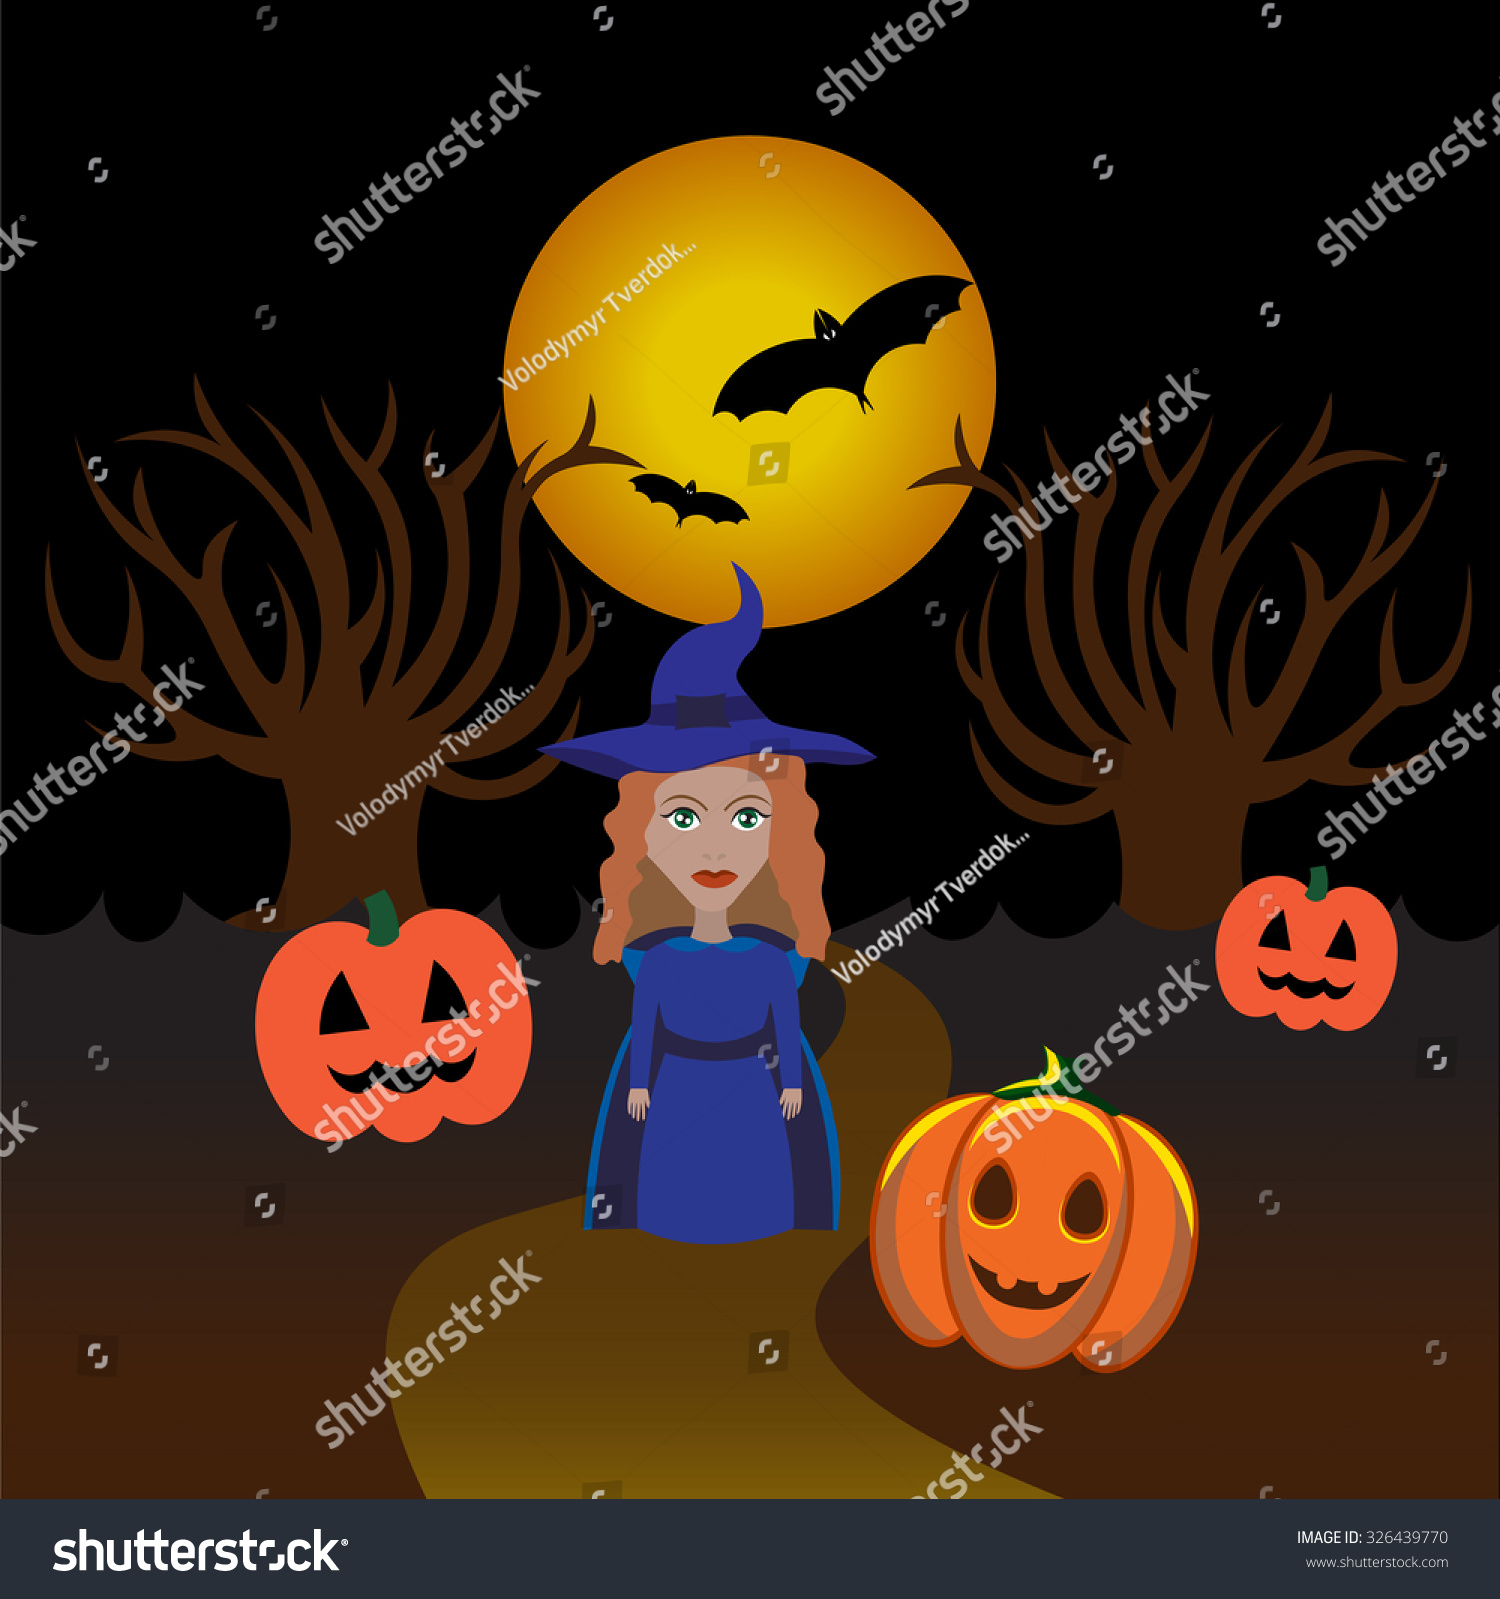 Download Wallpaper Halloween Magic - stock-vector-beautiful-art-creative-colorful-halloween-holiday-wallpaper-vector-illustration-of-one-magic-woman-326439770  Image_154277.jpg